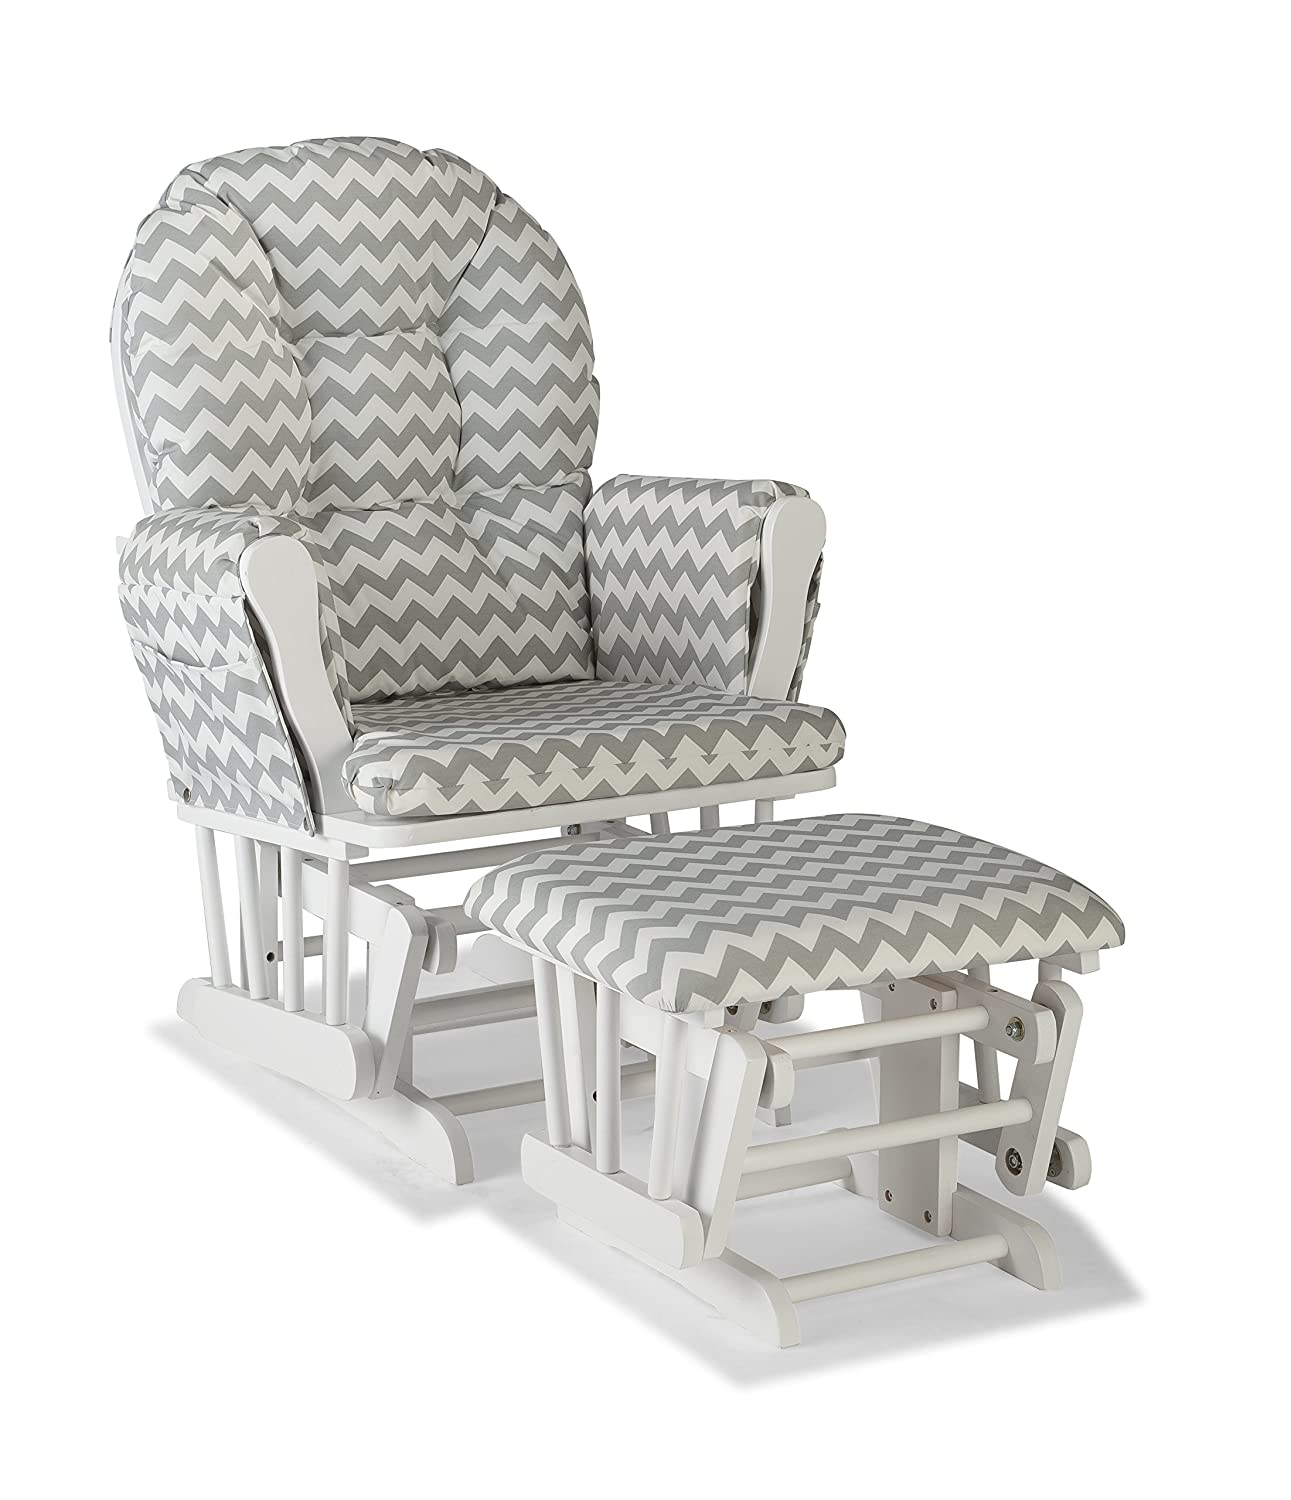 Storkcraft Hoop Custom Glider and Ottoman, White/Gray Chevron 06550-6101